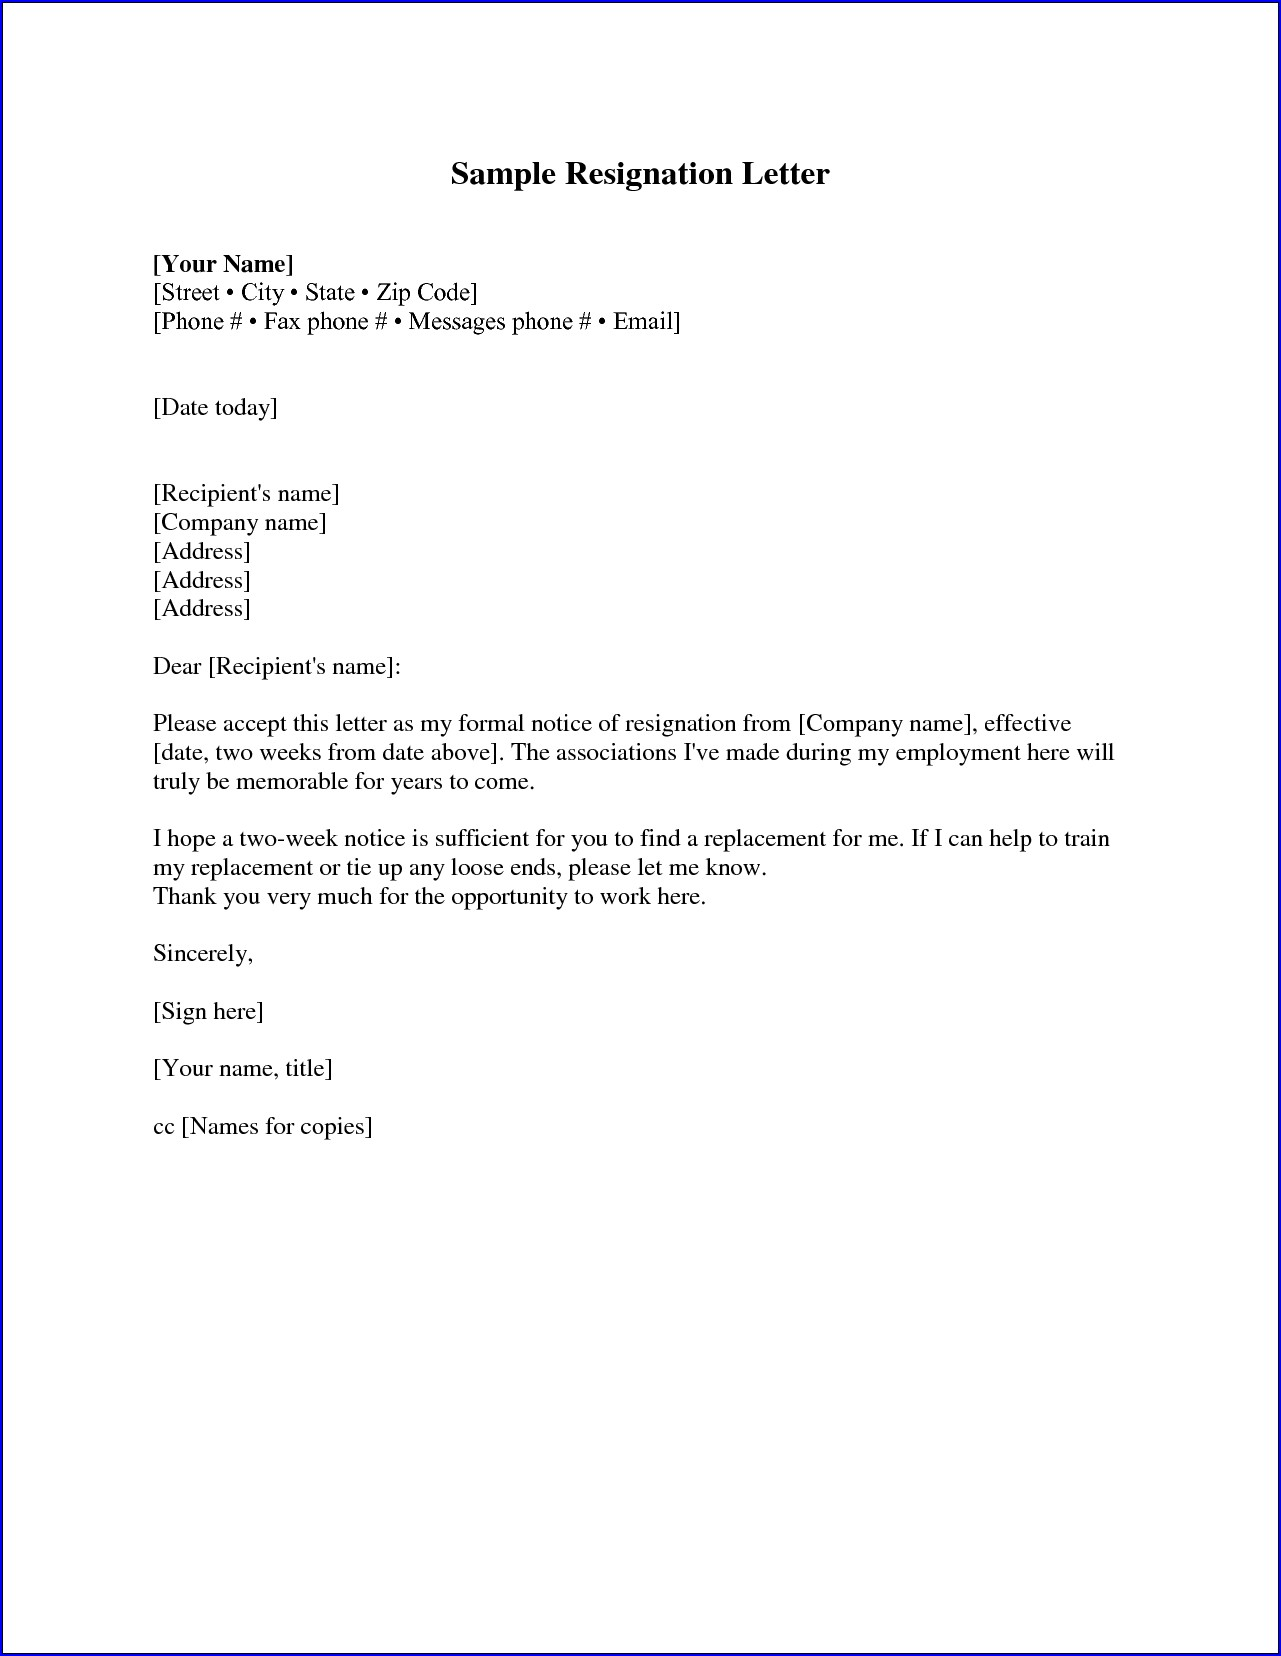 Example of Resignation Letter Two Weeks Notice